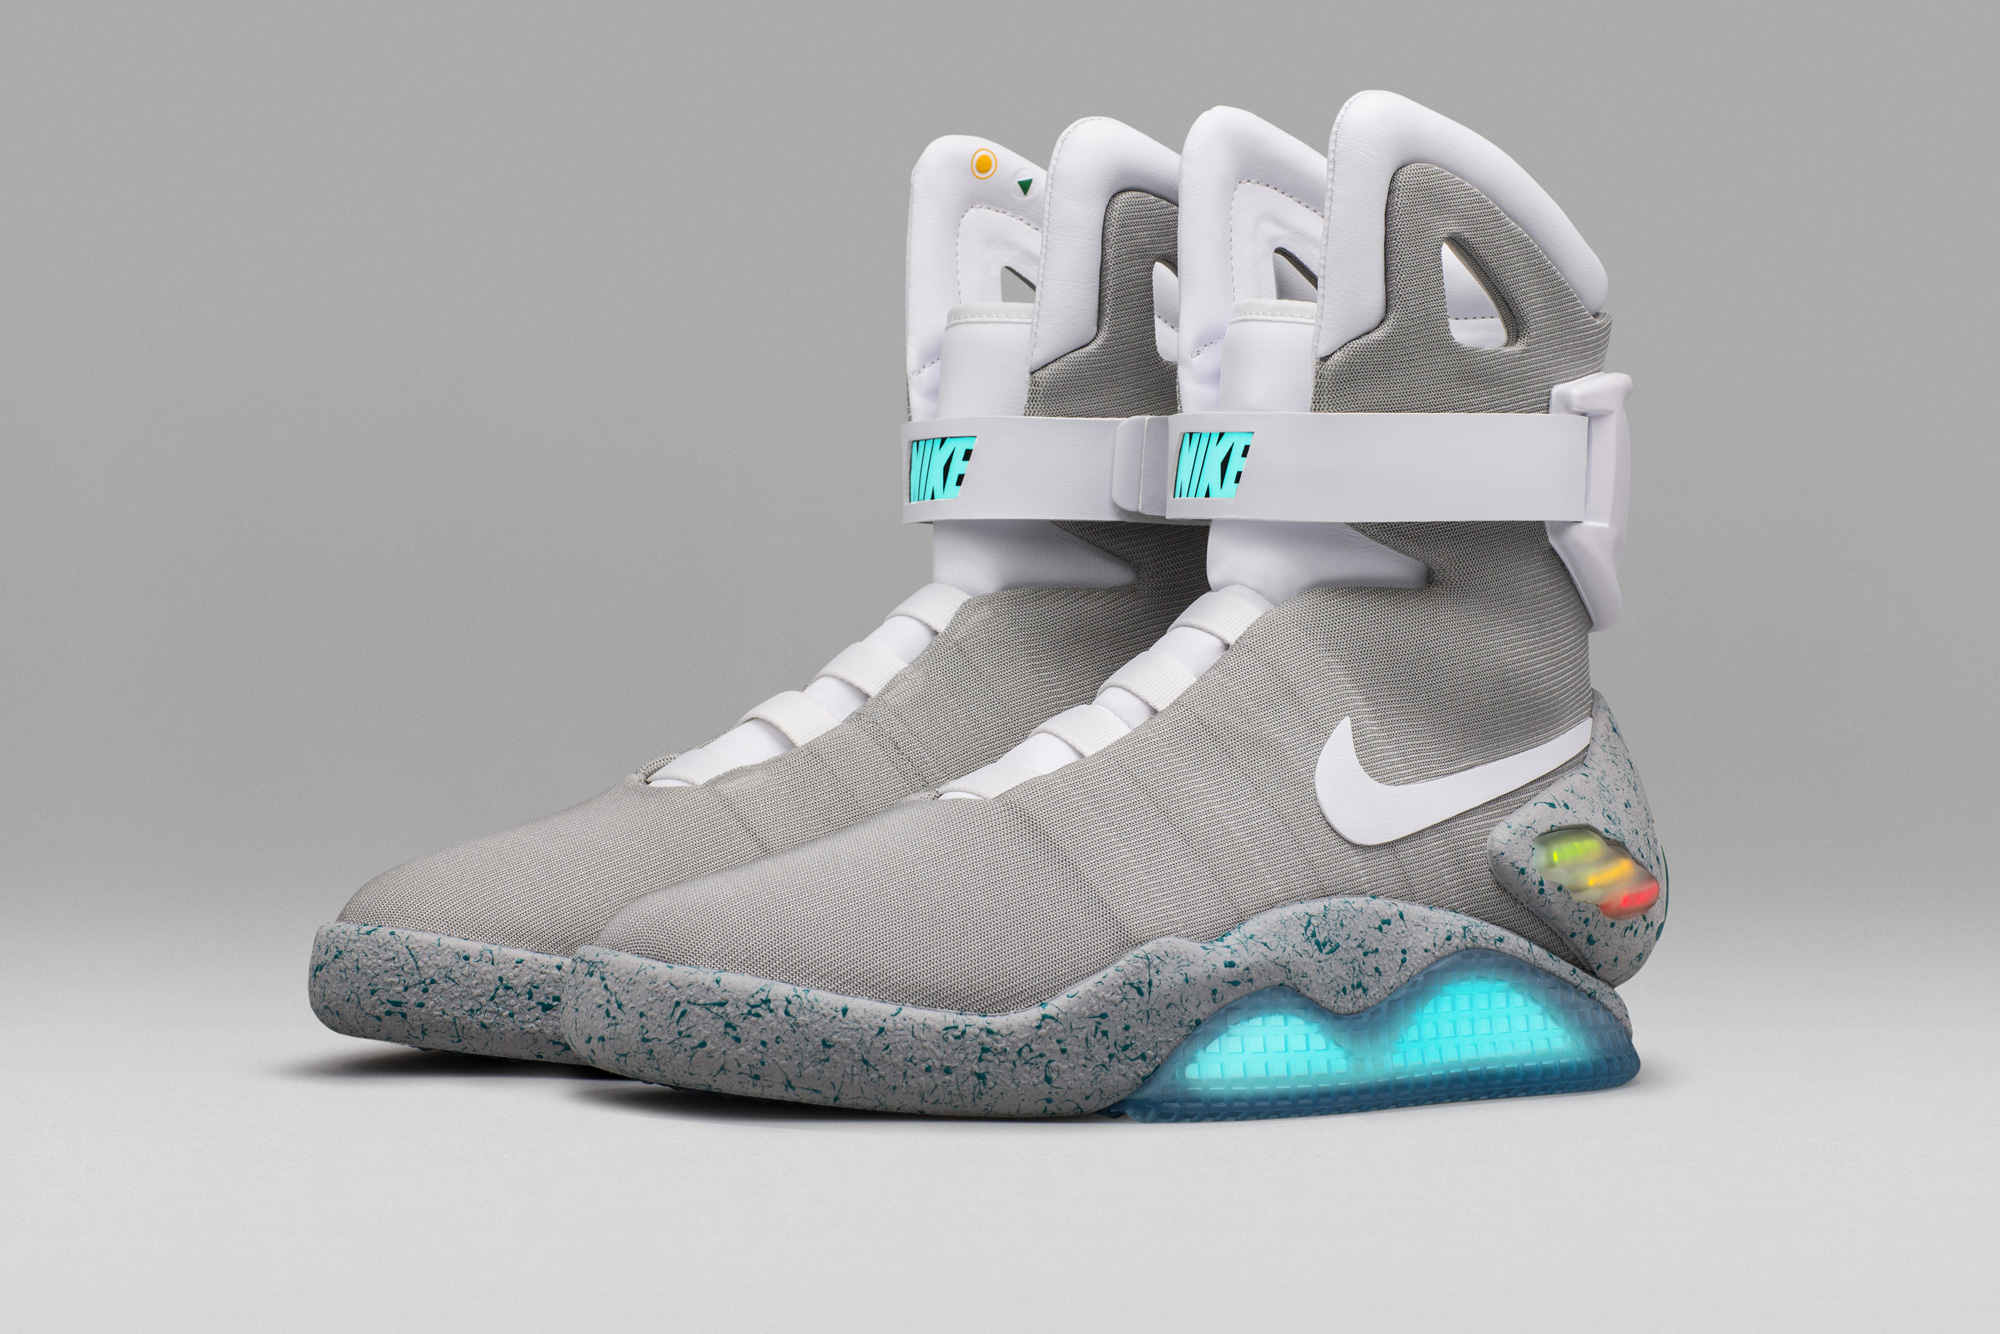 Nike Hyperadapt Back To The Future Shoe